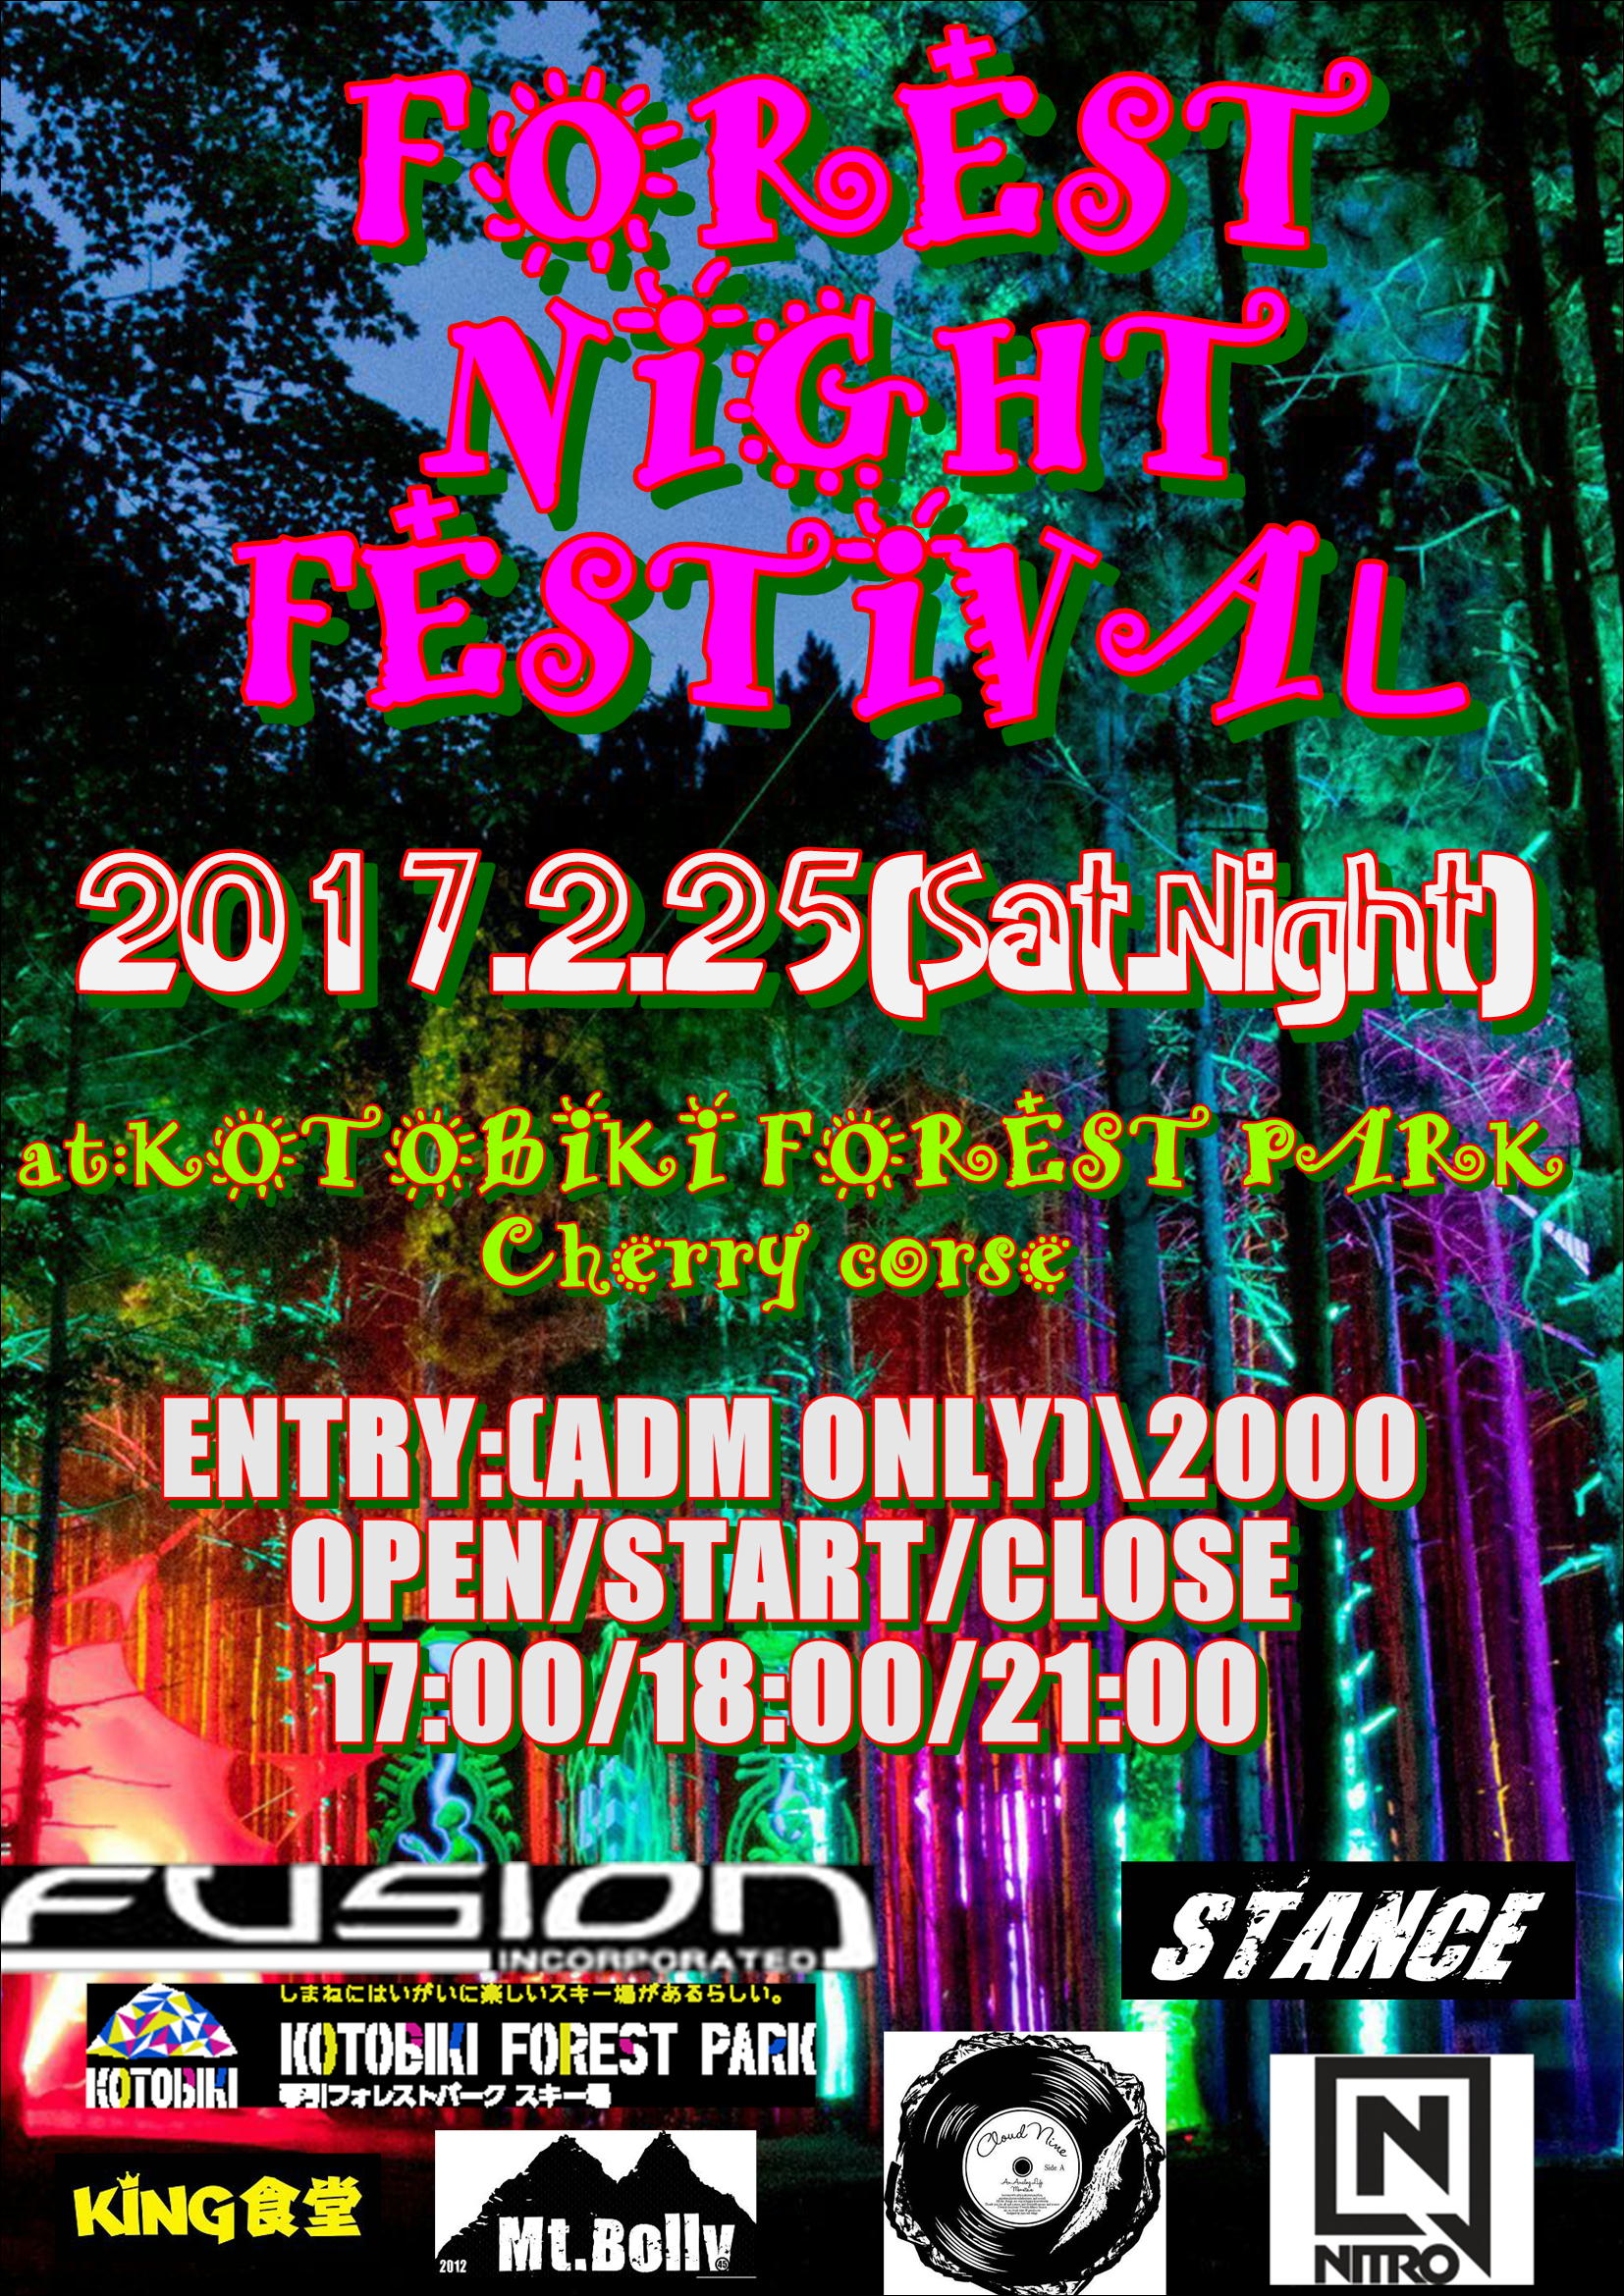 FOREST NIGHT FESTIVAL